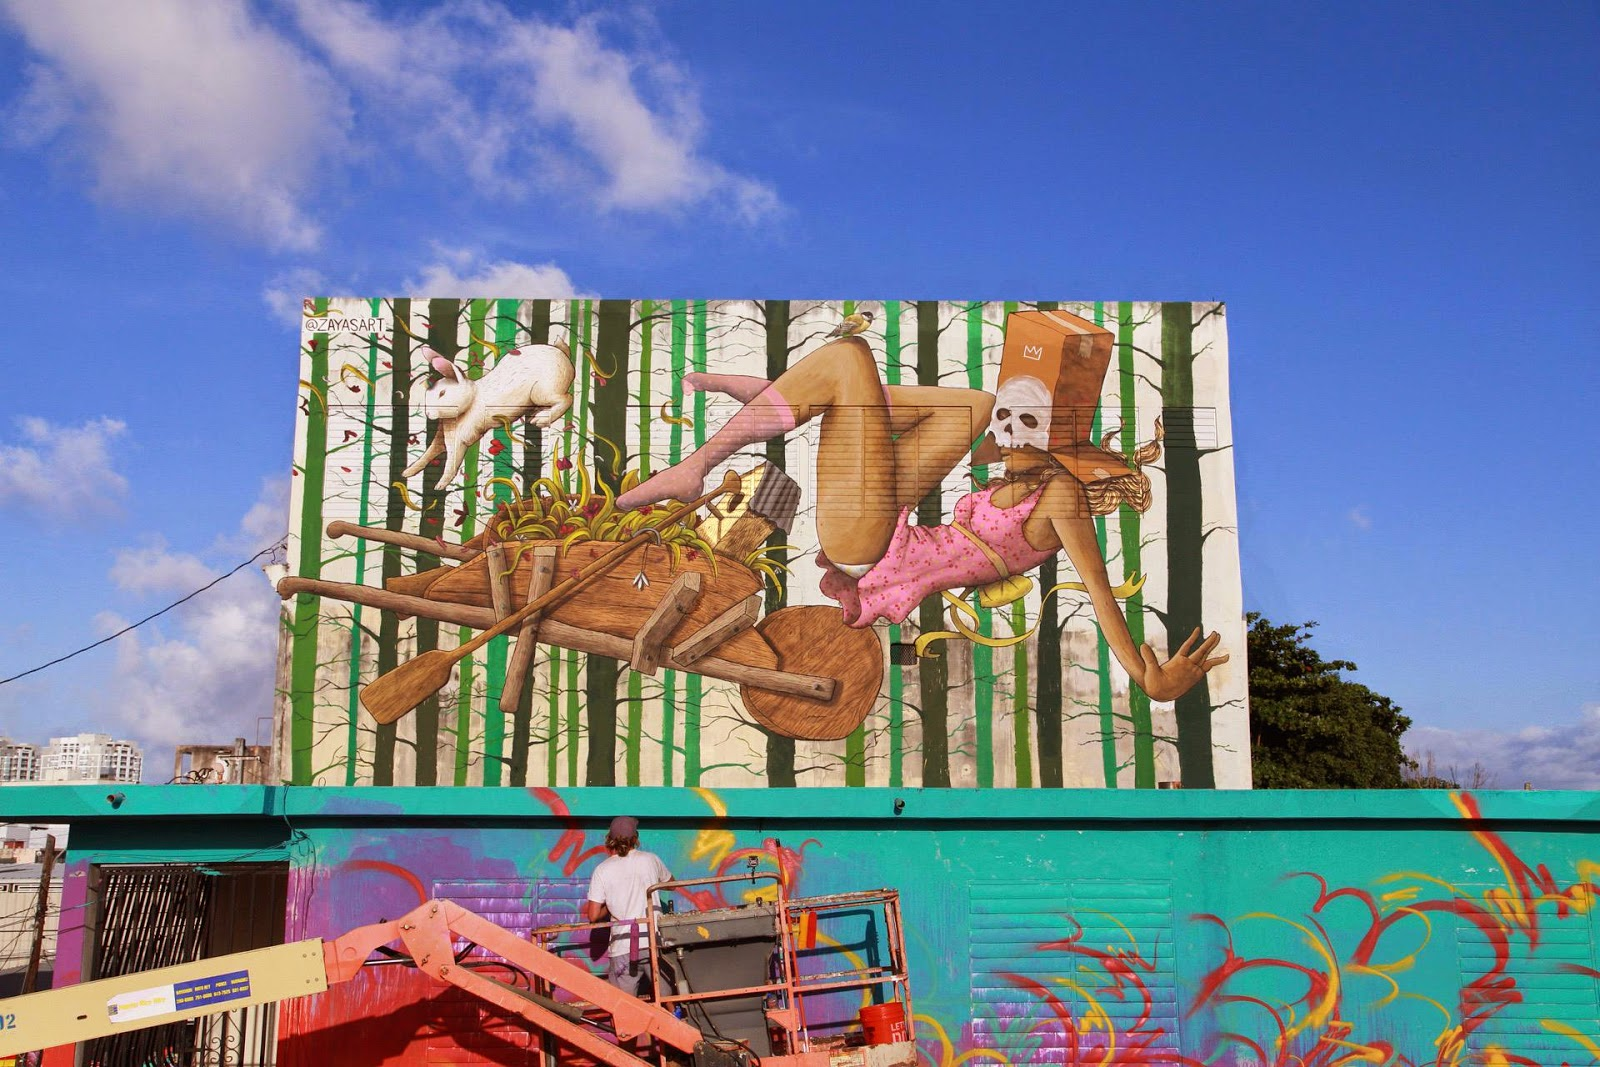 Our friend David Zayas was also part of the excellent Fifth edition of Santurce Es Ley Street Art Festival in San Juan, Puerto Rico.